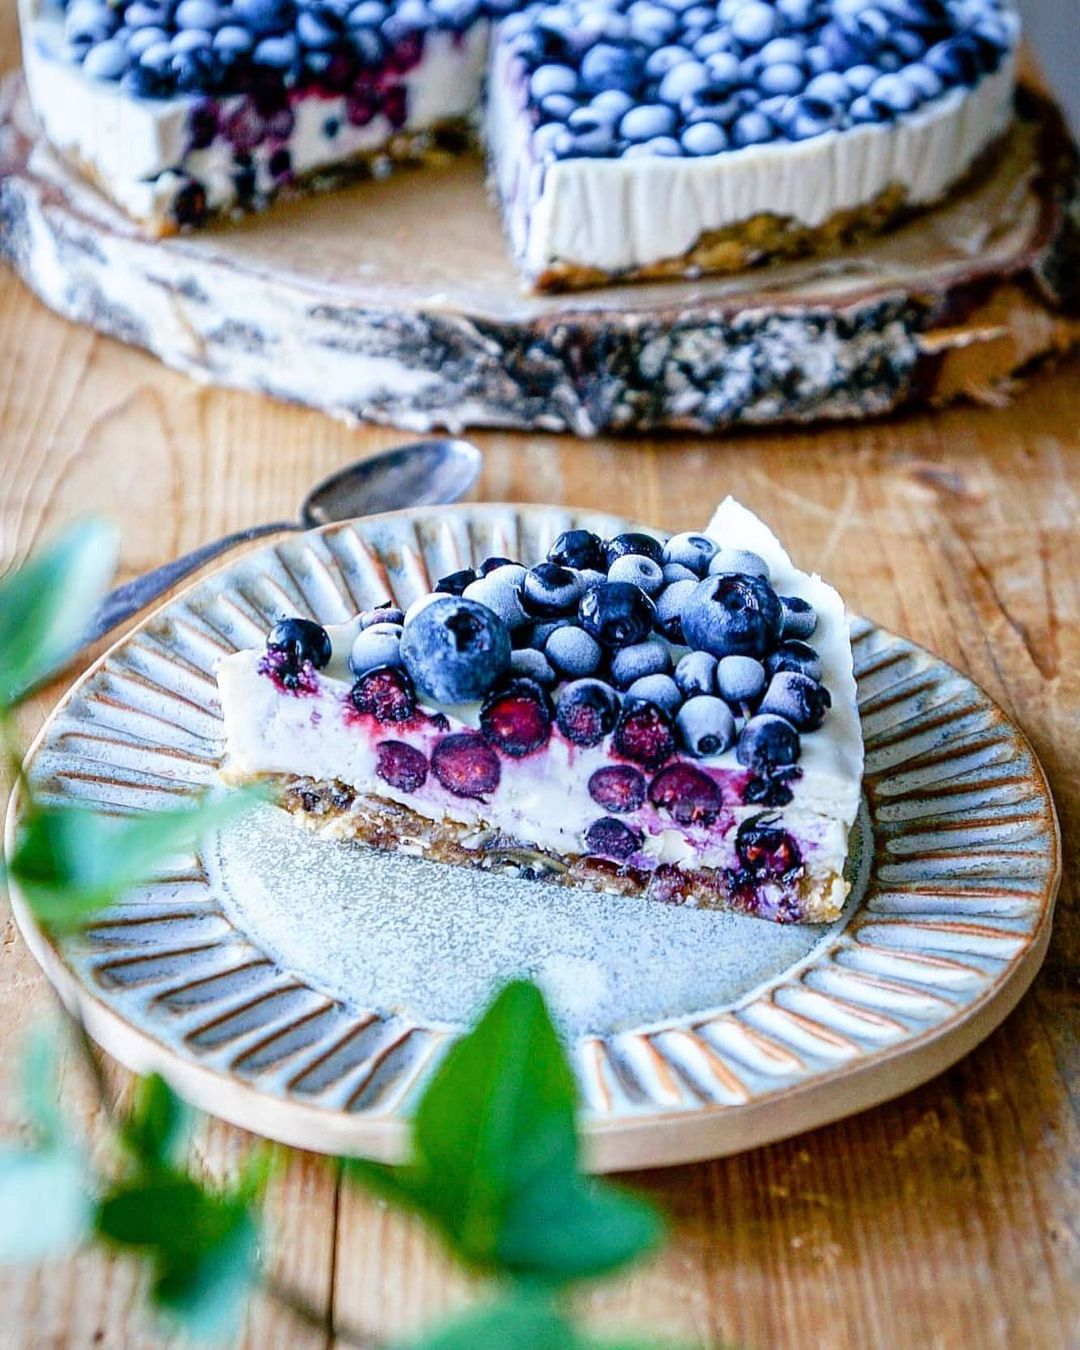 blueberry raw cheesecake  with forest picked blueberries display image  6ea24d95